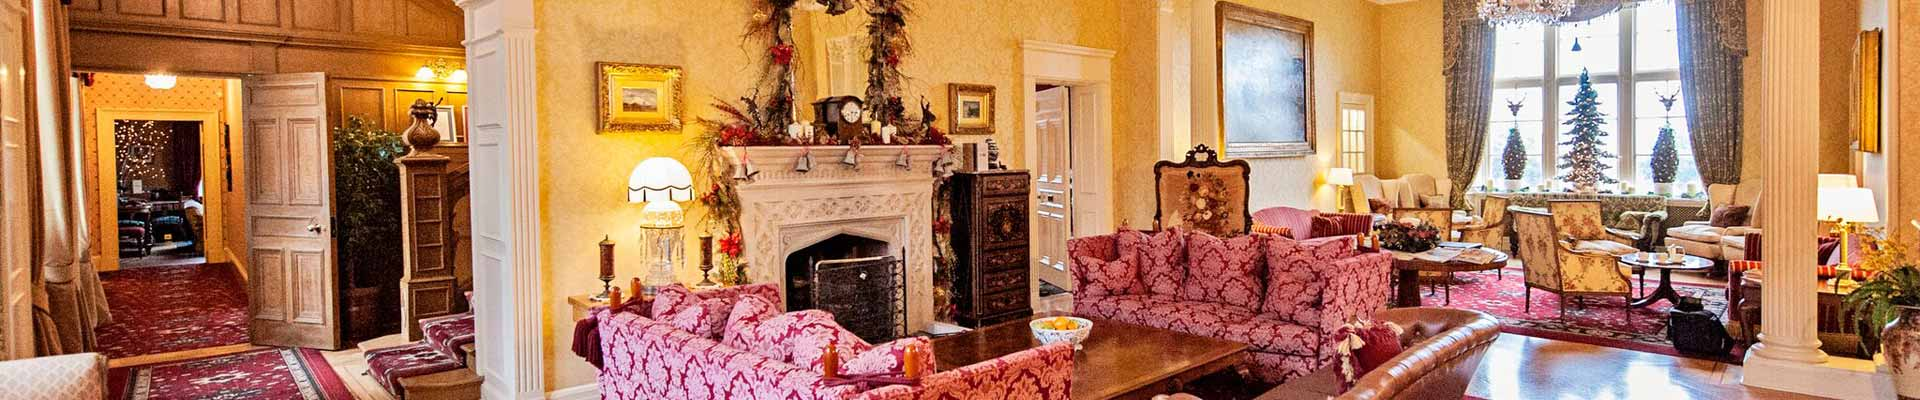 Photo of Glenapp Castle's lounge